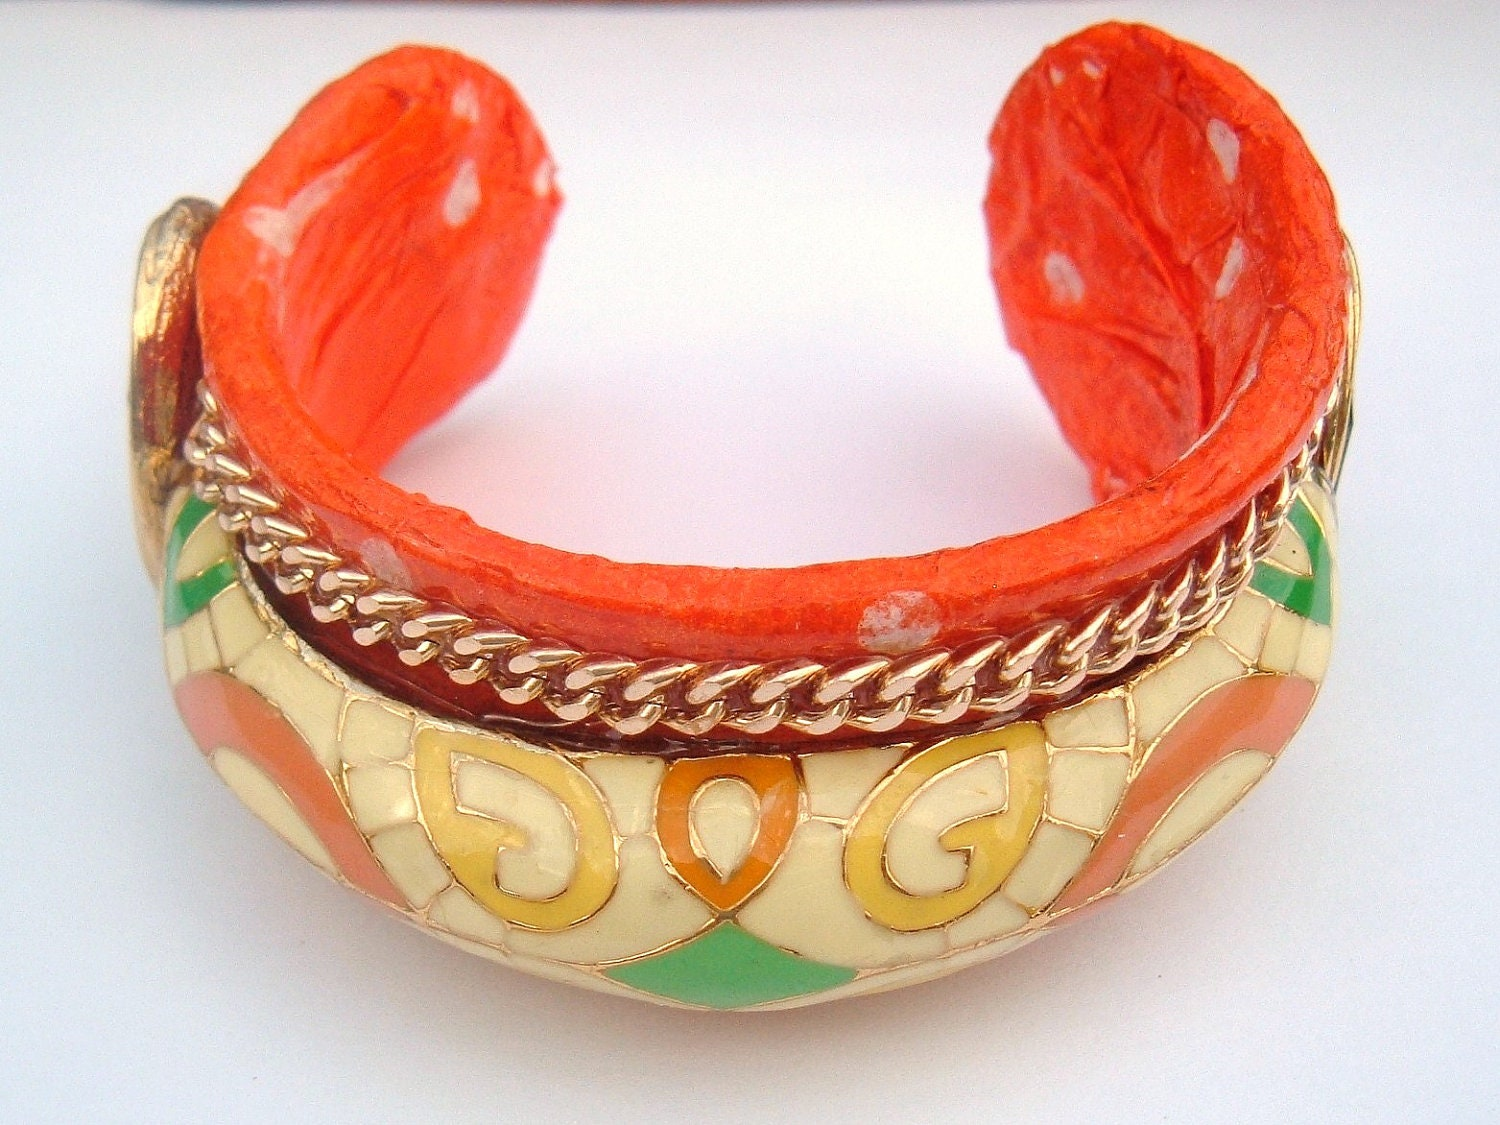 A Polkadot Orange Decoupage Cuff Bracelet vintage recycle